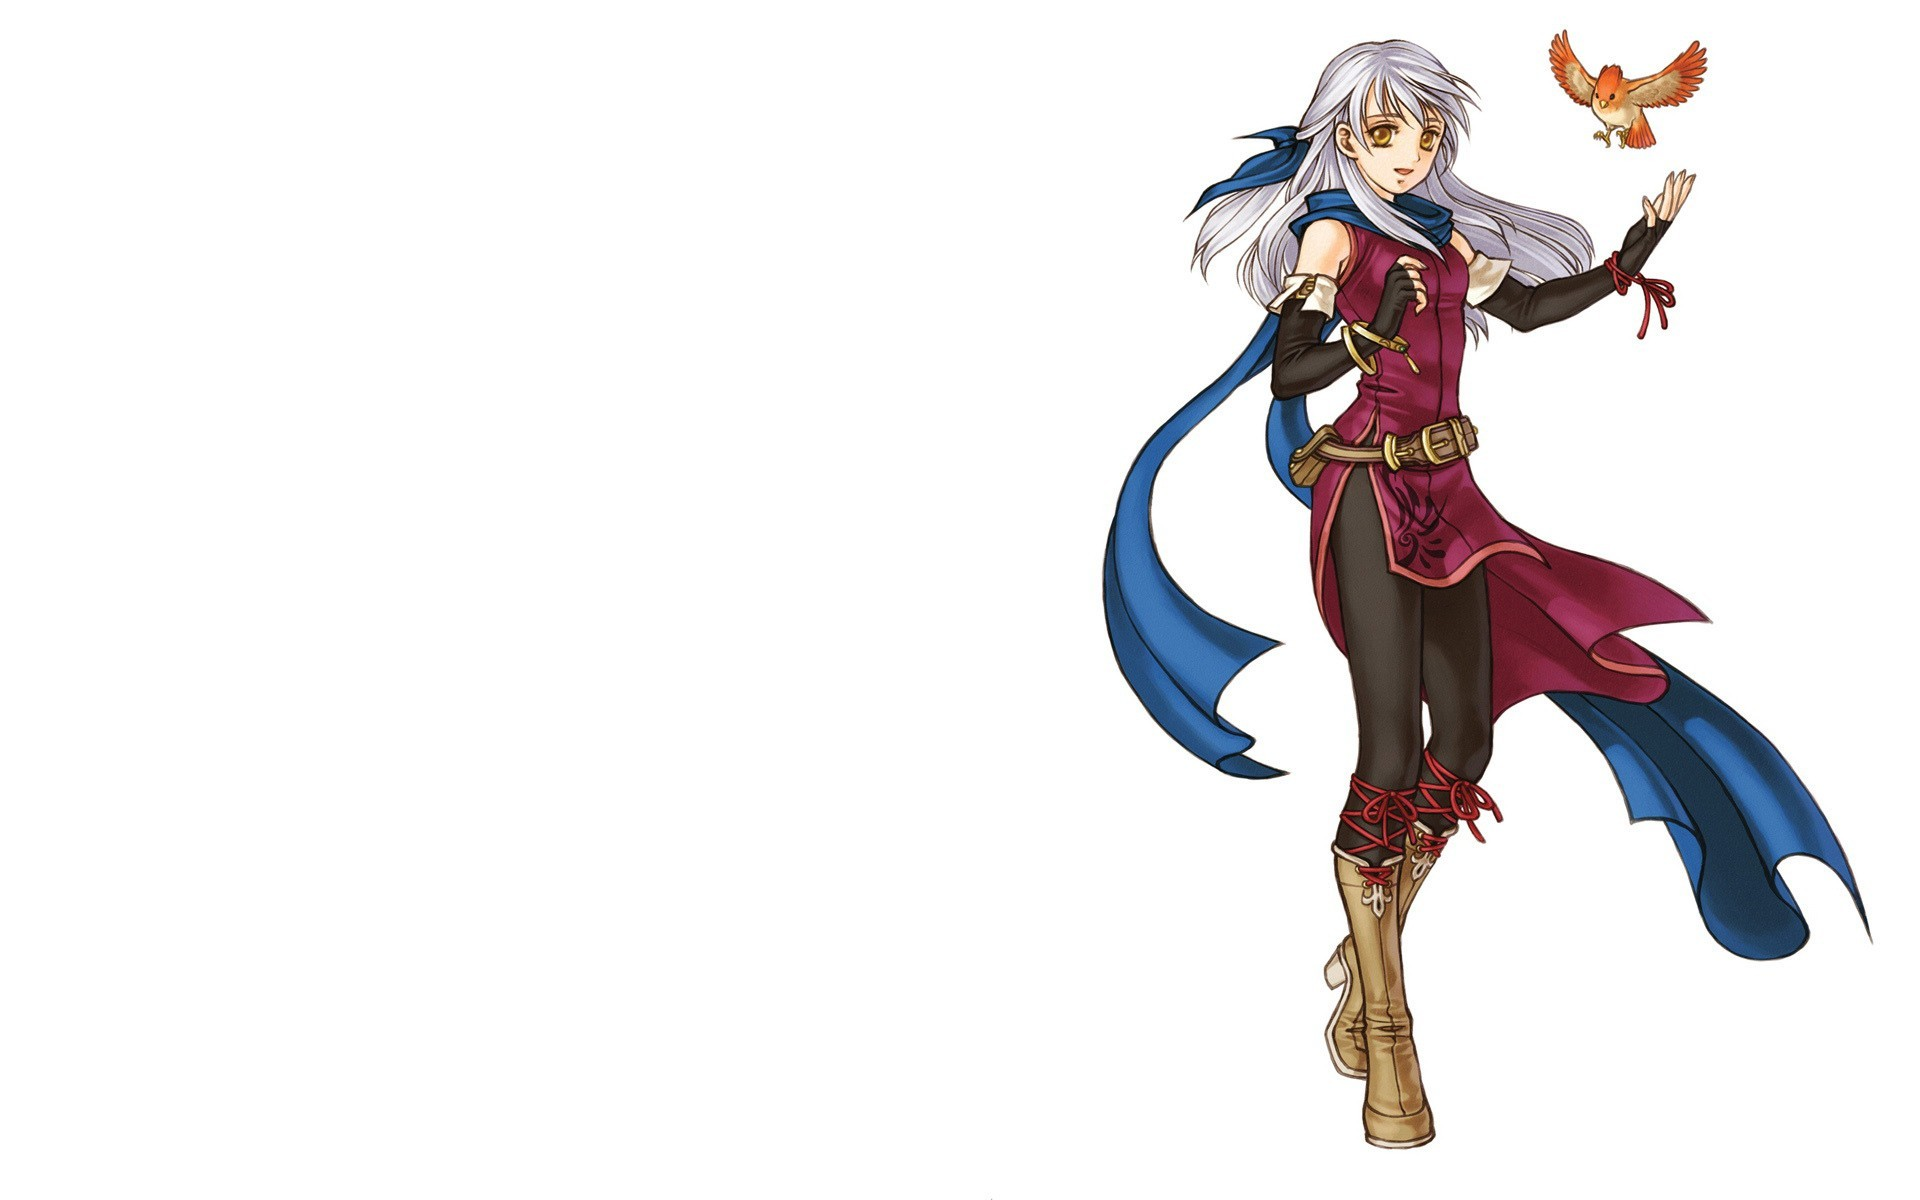 fire emblem Simple Background HD Wallpaper